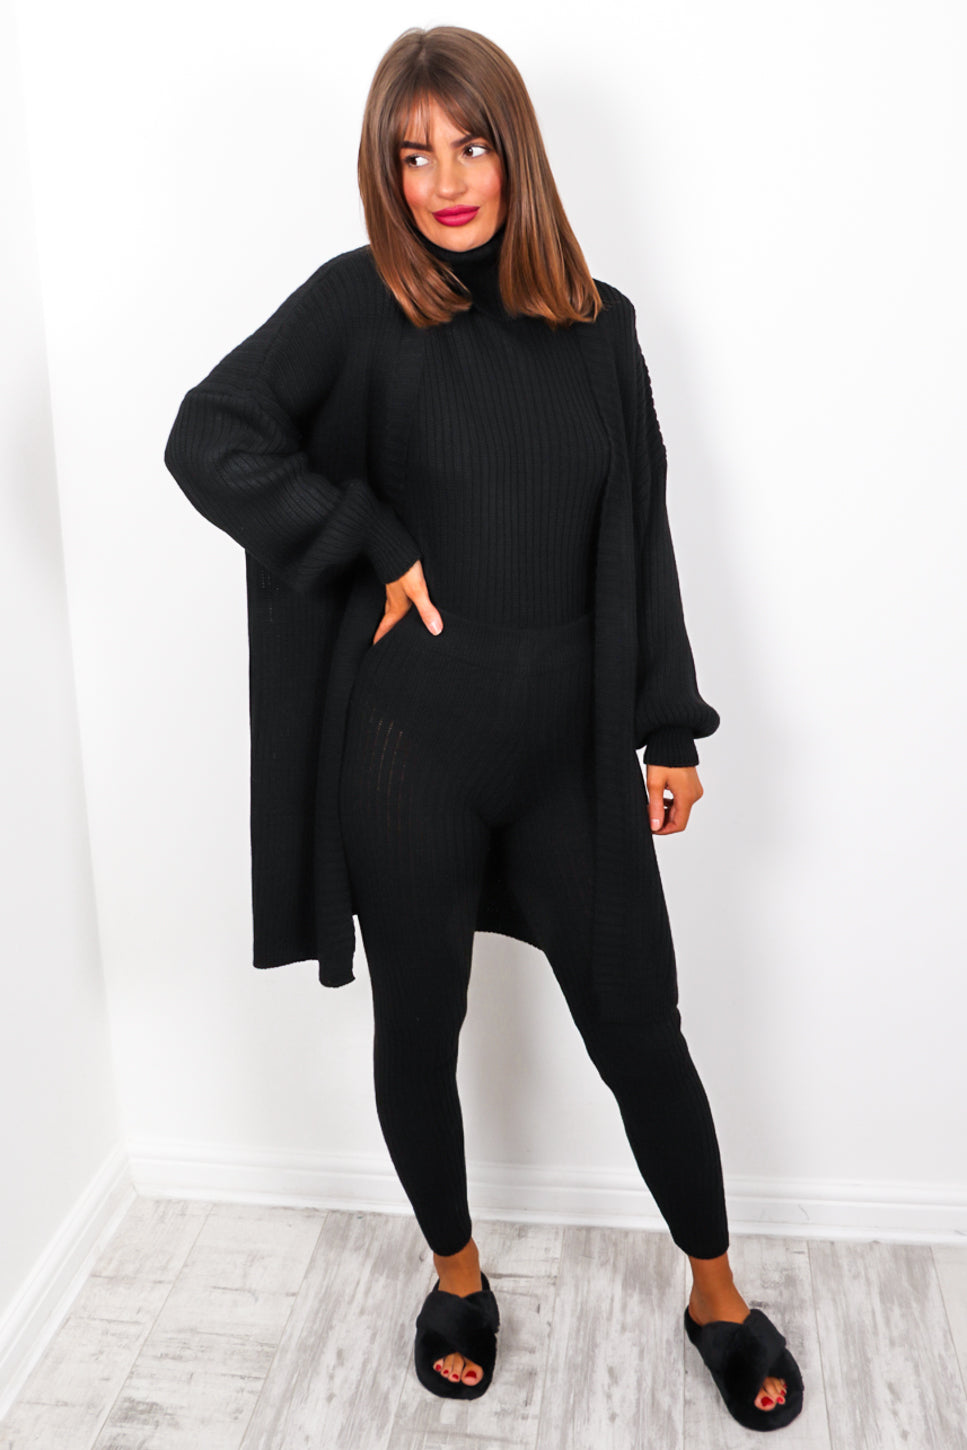 Third Time Lucky - Black Knitted Three Piece Set